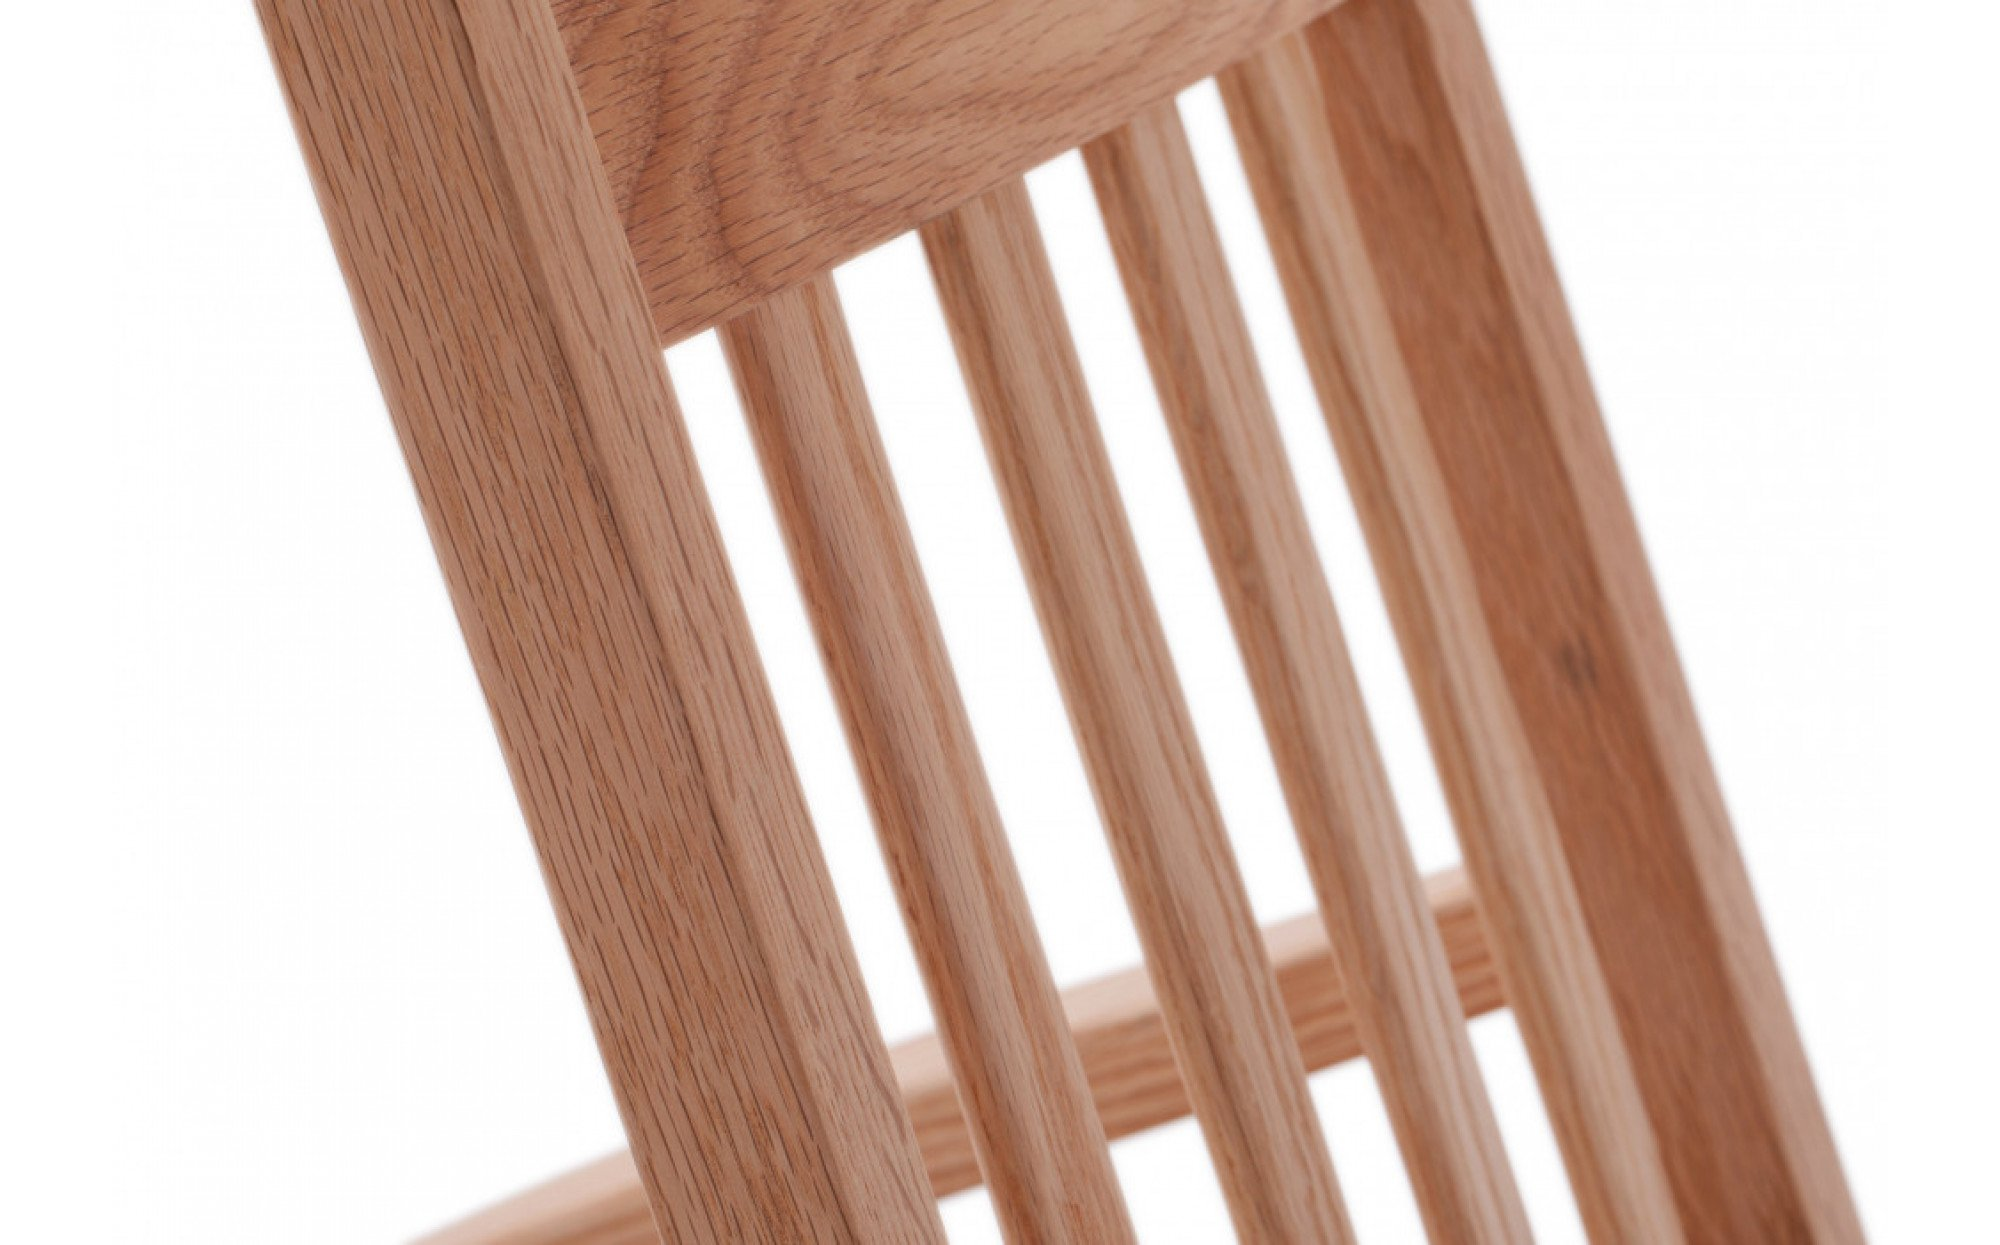 Classic Oak Childu0027s Rocking Chair